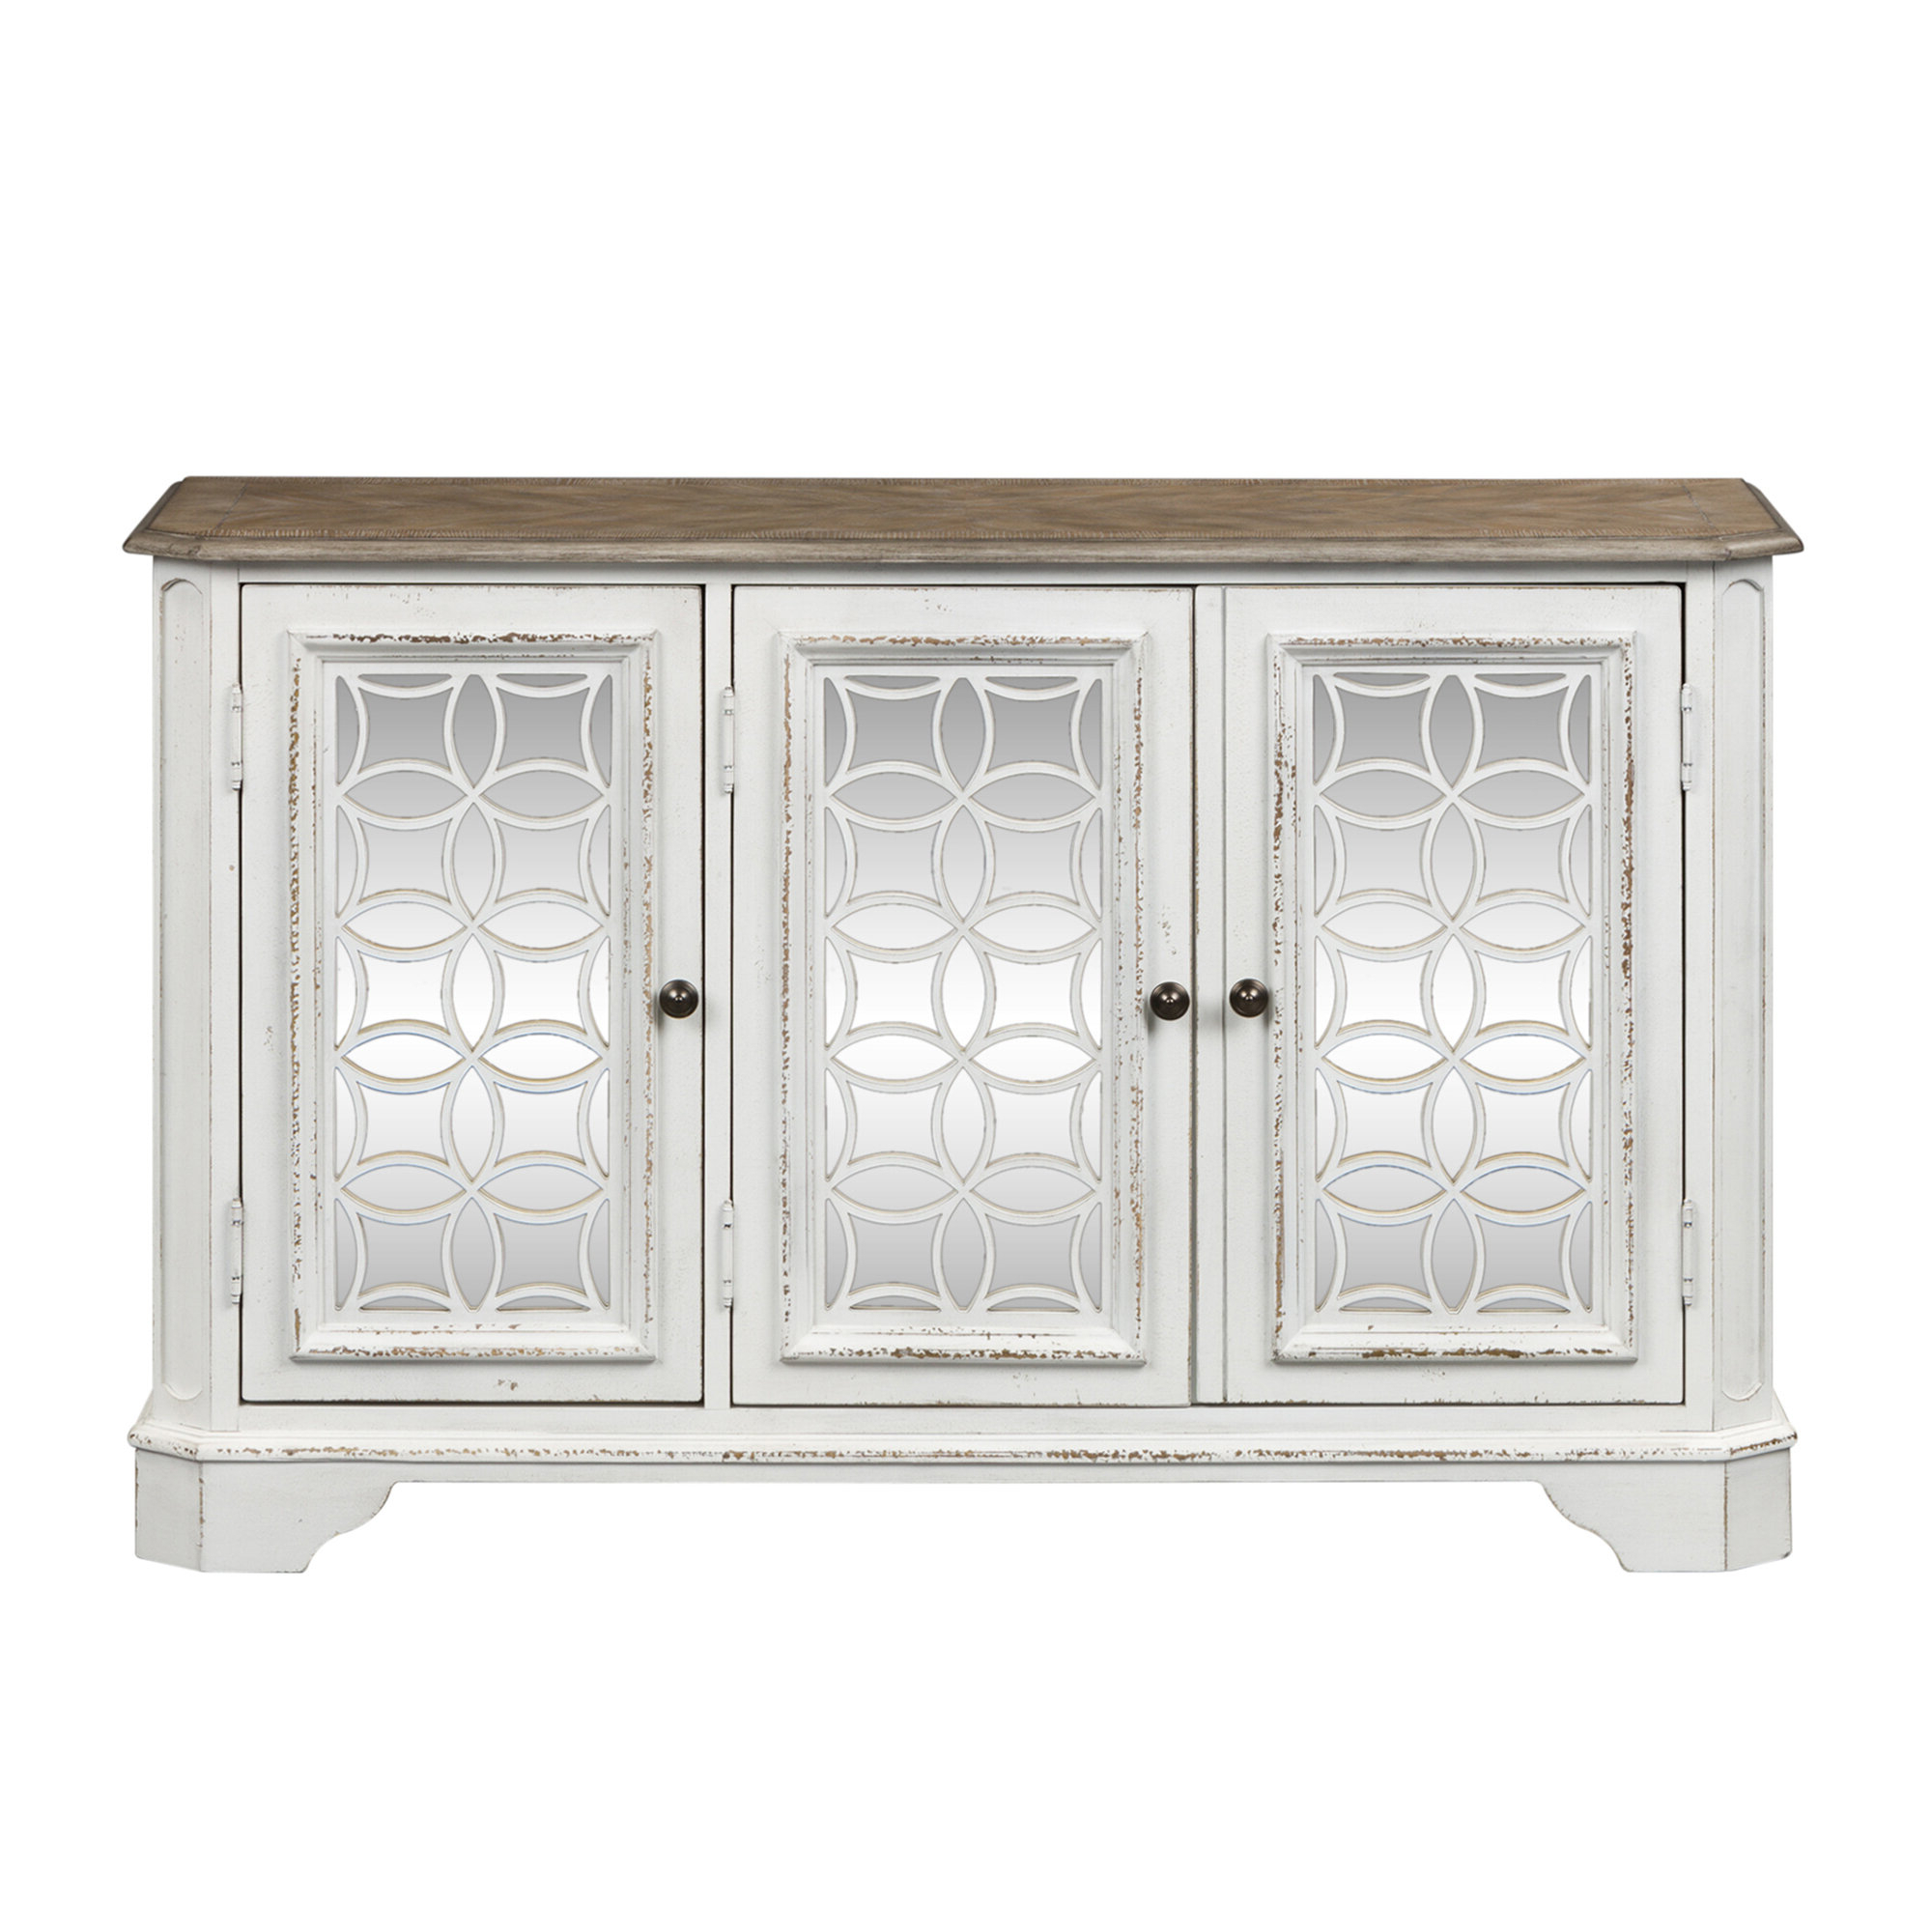 2019 Tavant Sideboard Throughout Tiphaine Sideboards (View 12 of 20)